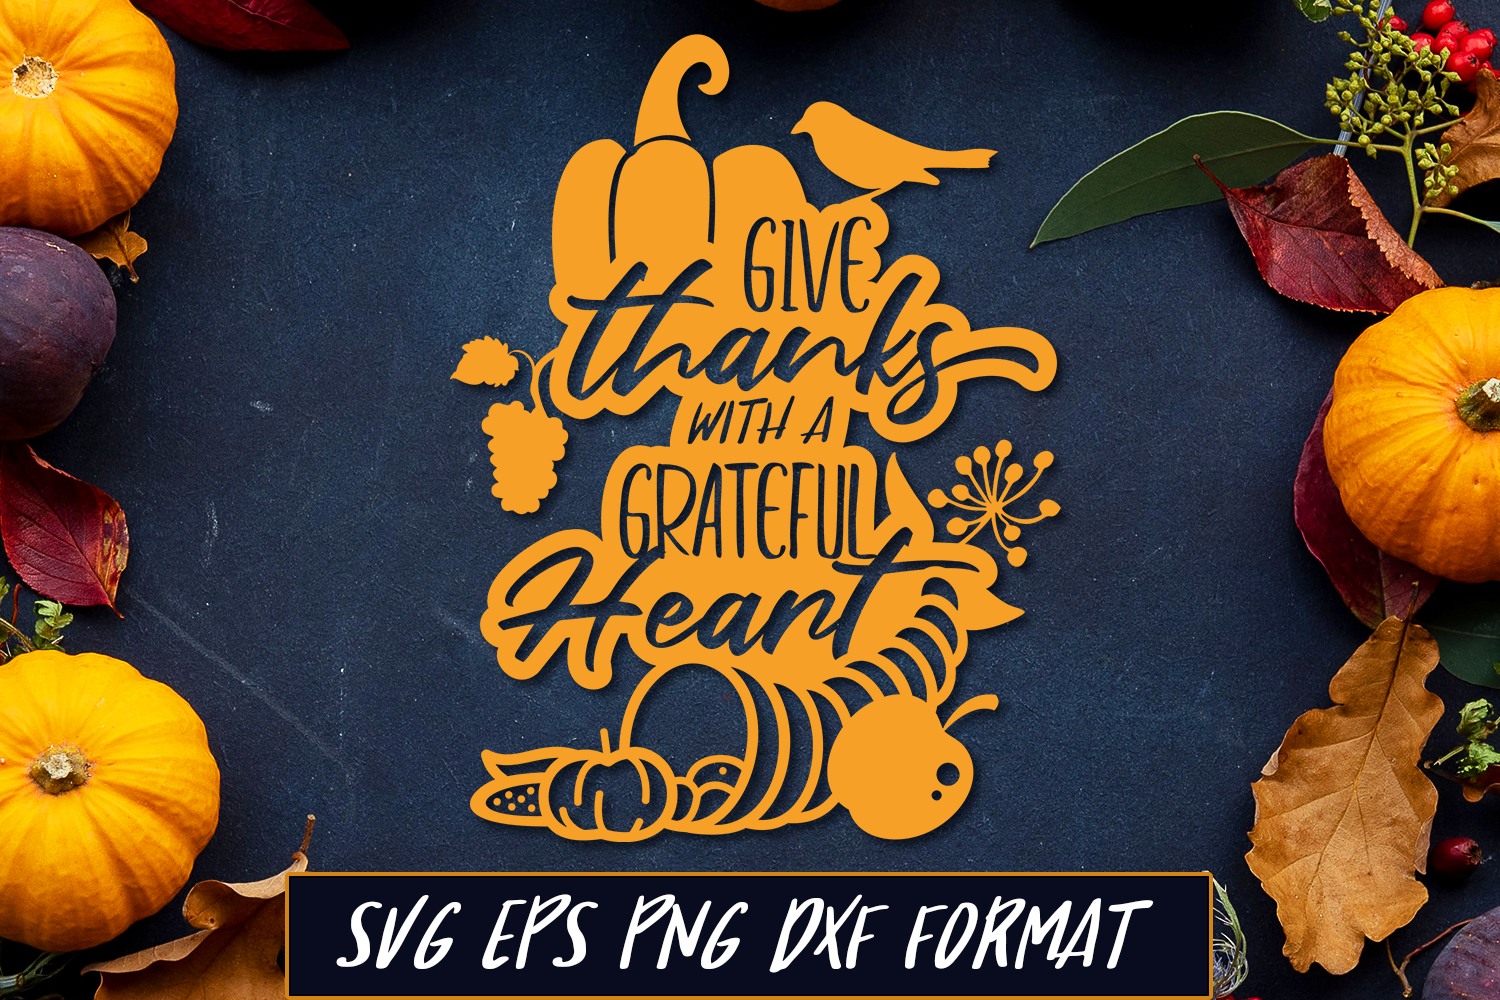 Give Thanks With A Grateful Heart Thanksgiving Svg Cut File By Craft N Cuts Thehungryjpeg Com